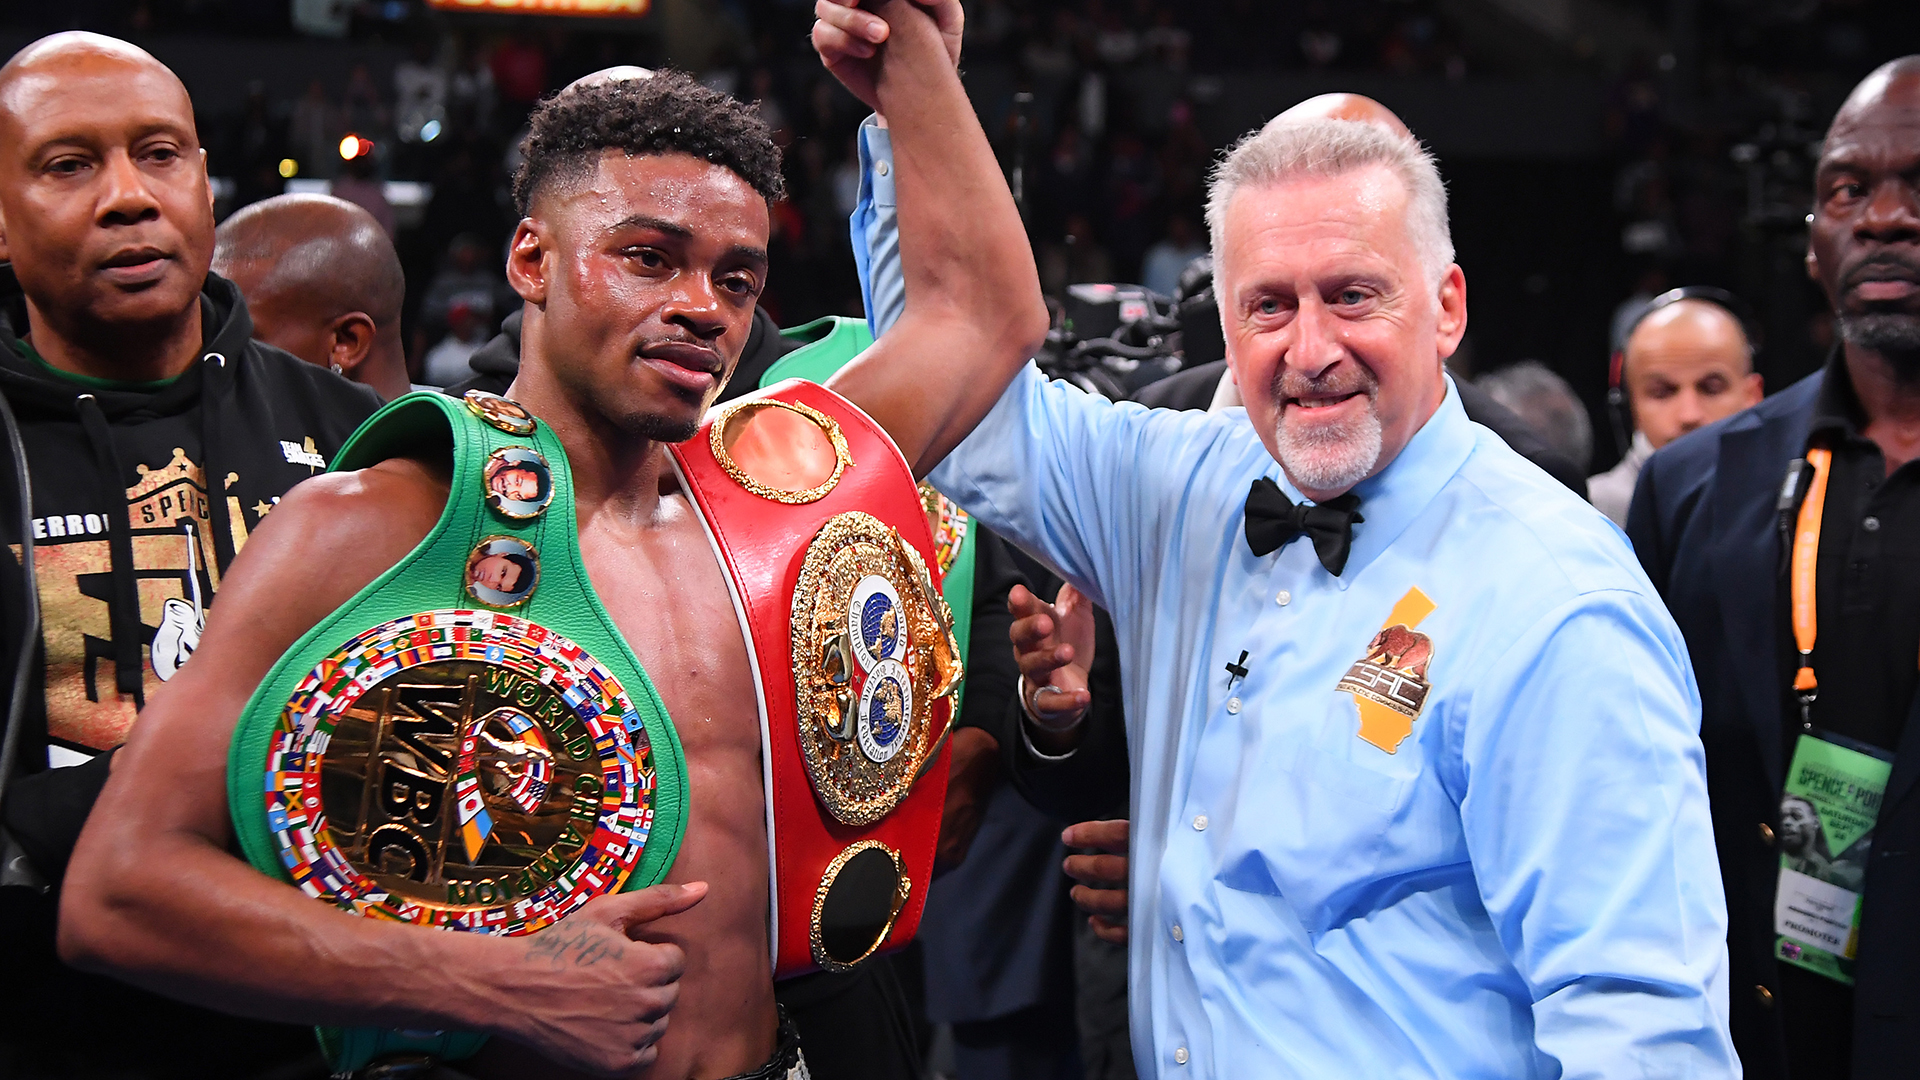 Spence who is still unbeaten faces Porter to unify welterweight titles